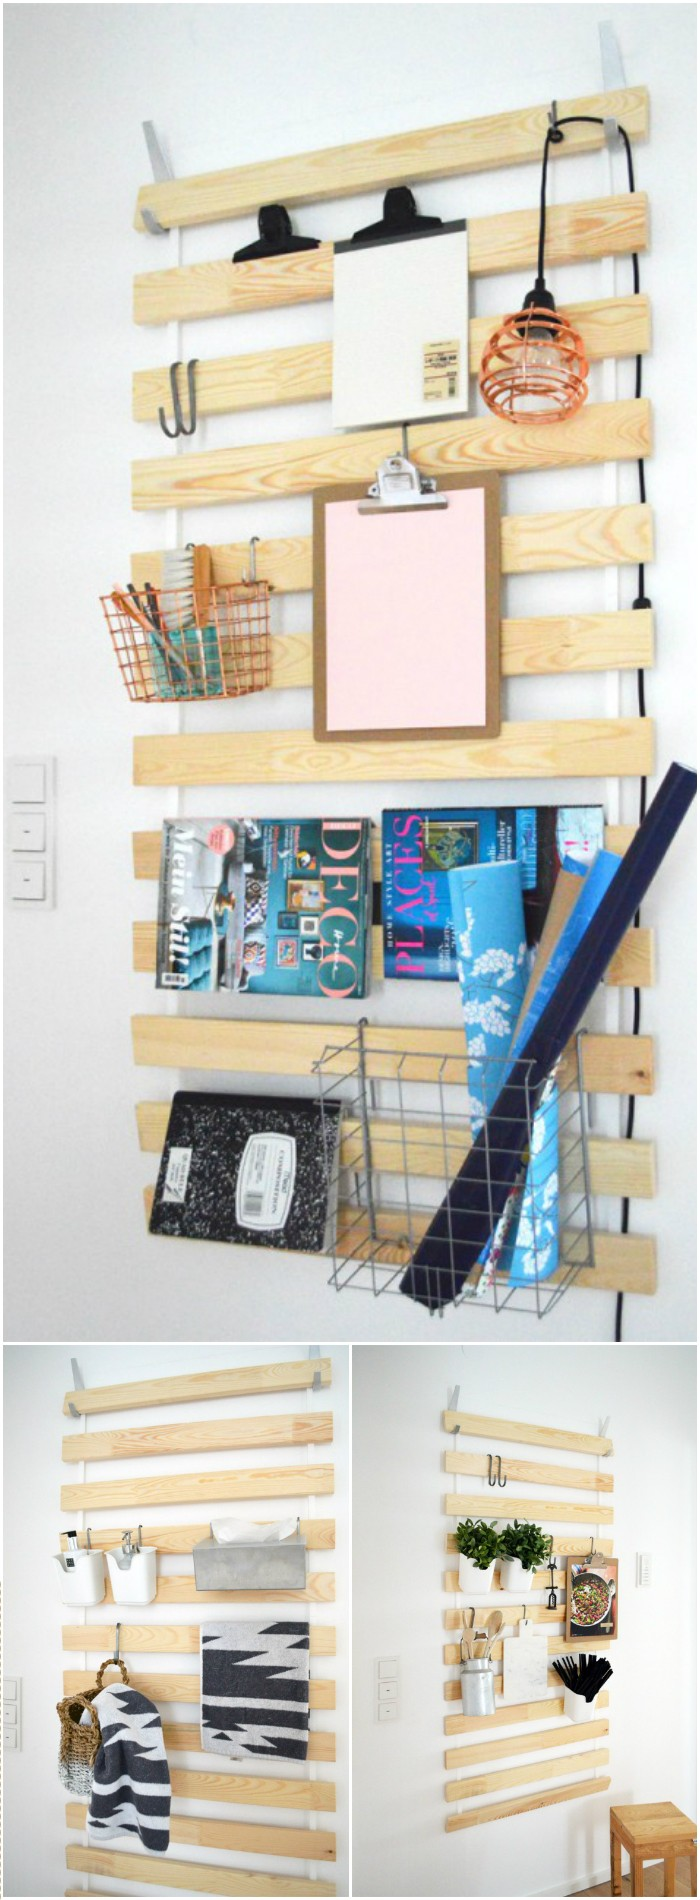 DIY Hanging Pallet Board IKEA Hacks For Your Home Decor